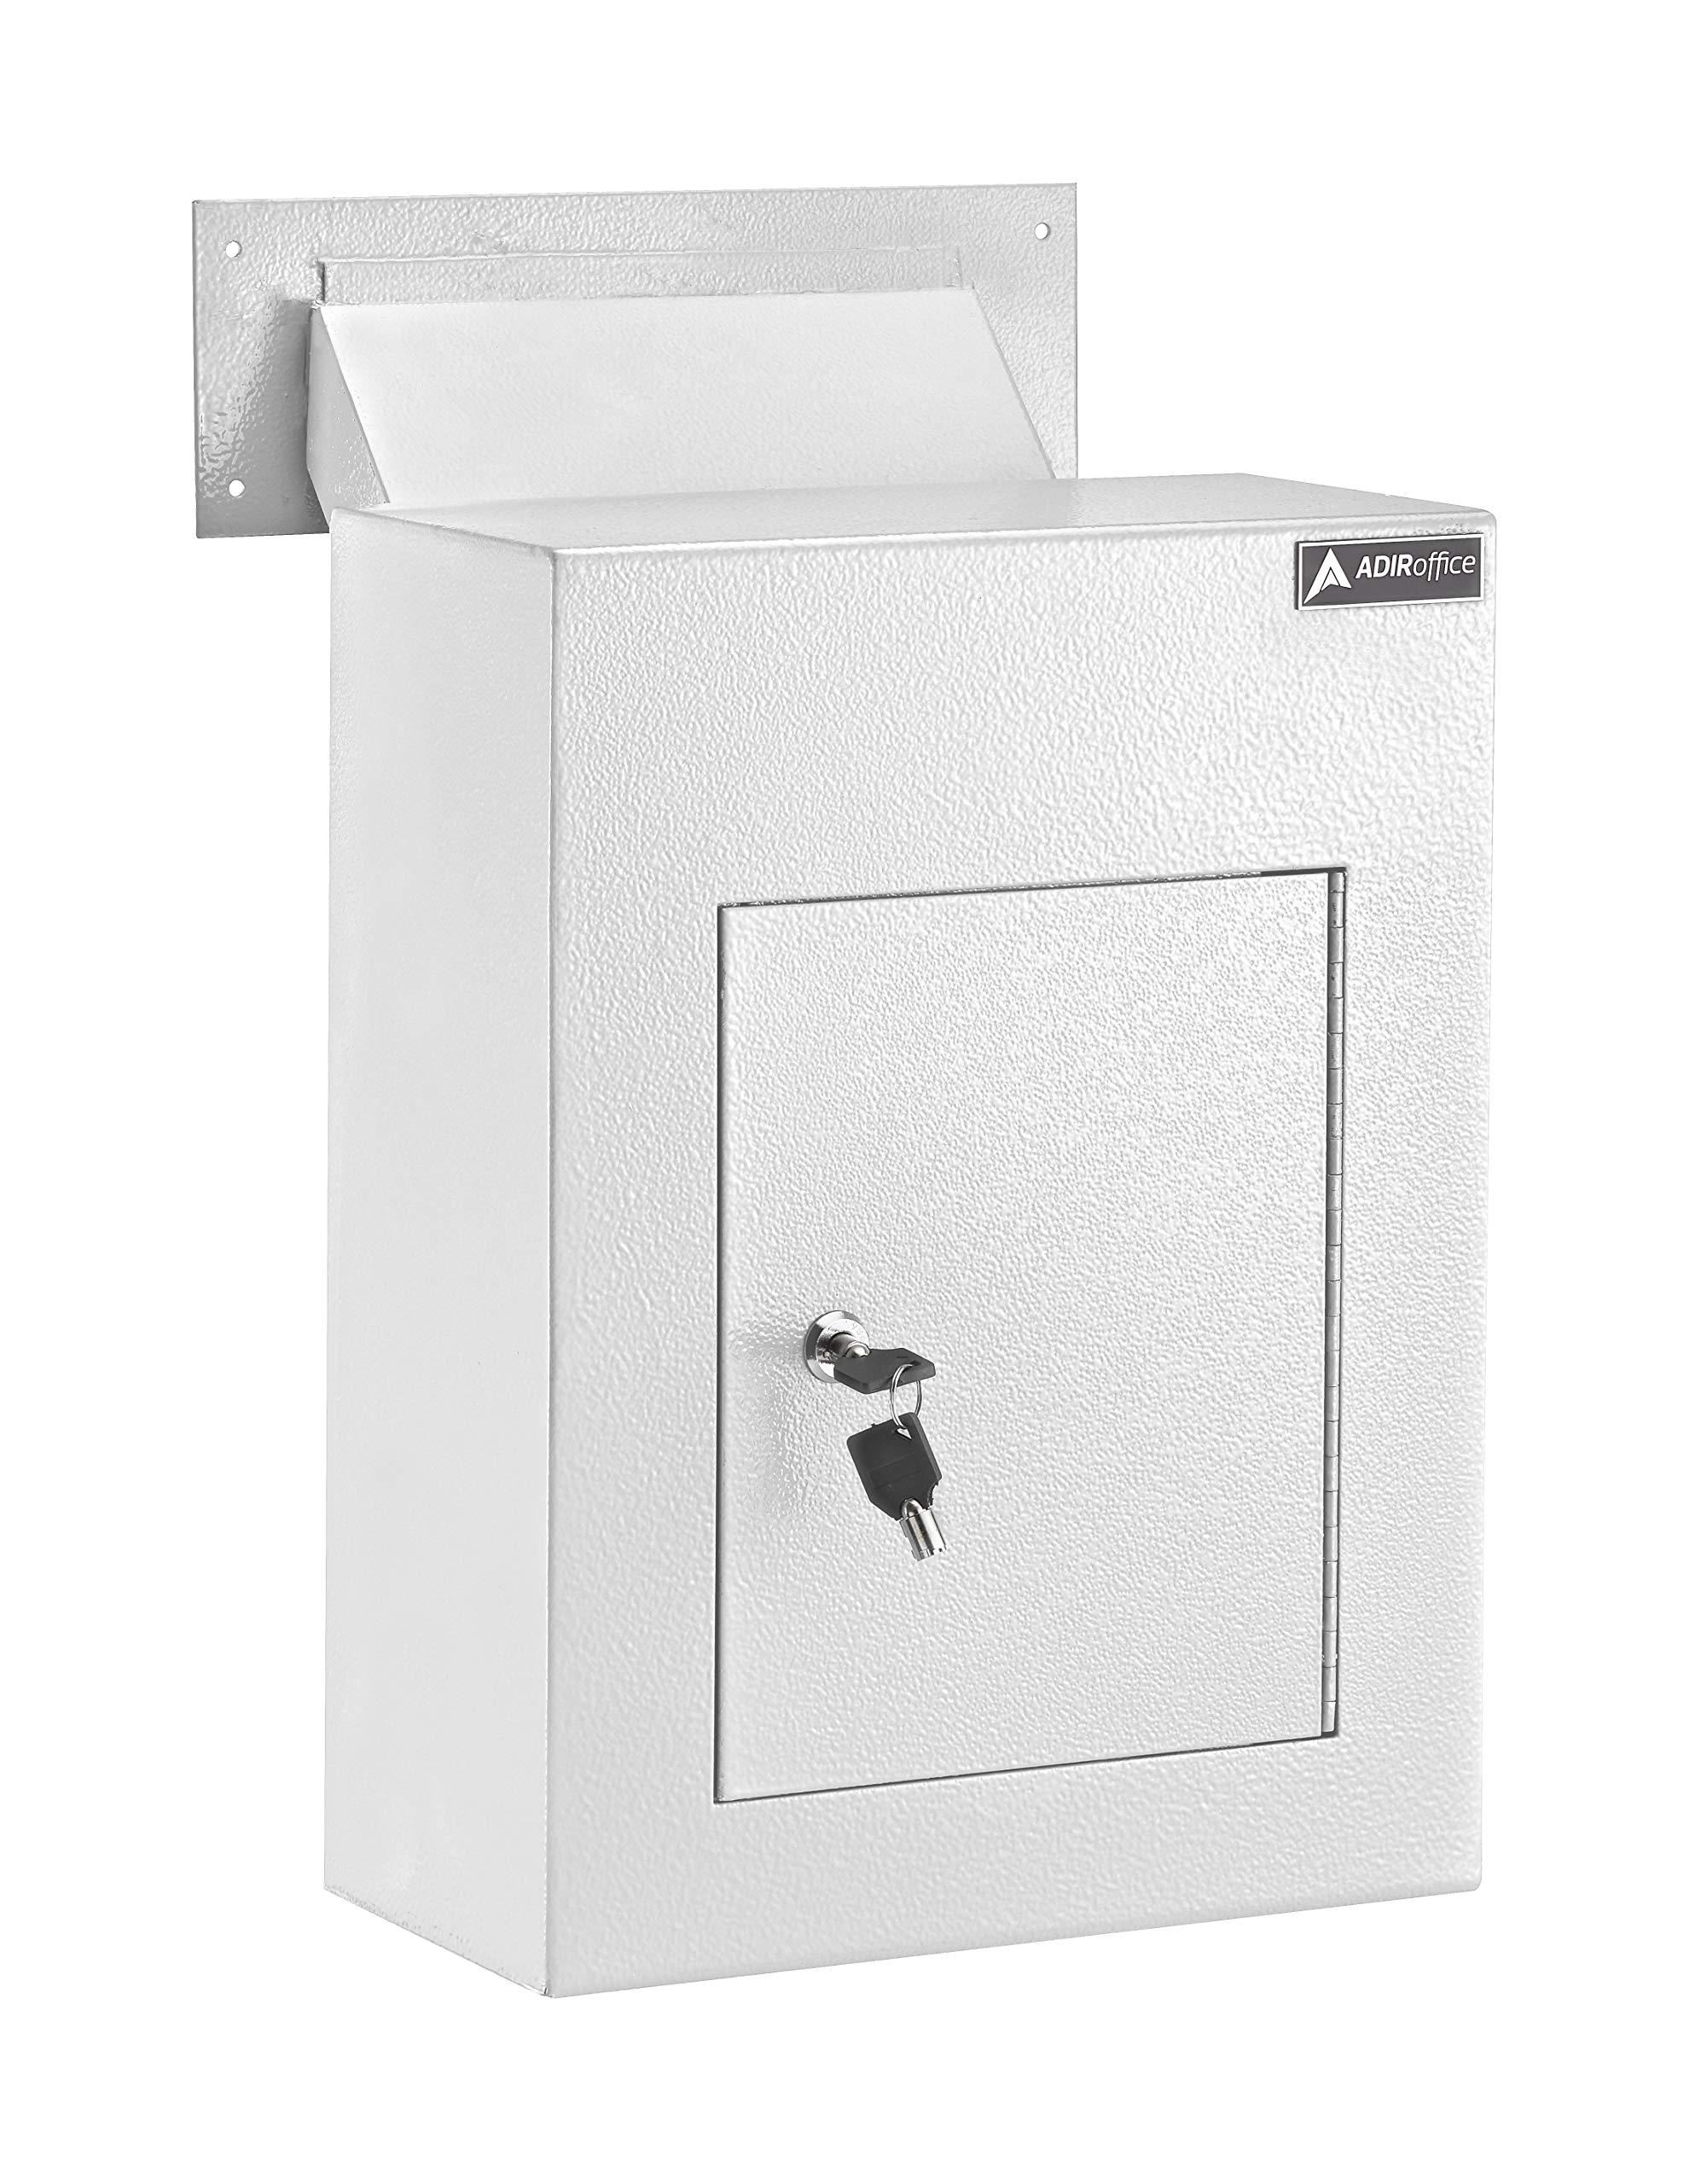 AdirOffice Through The Wall Drop Box Safe (Black/Grey/White) - Durable Thick Steel w/Adjustable Chute - Mail Vault for Home Office Hotel Apartment (White)